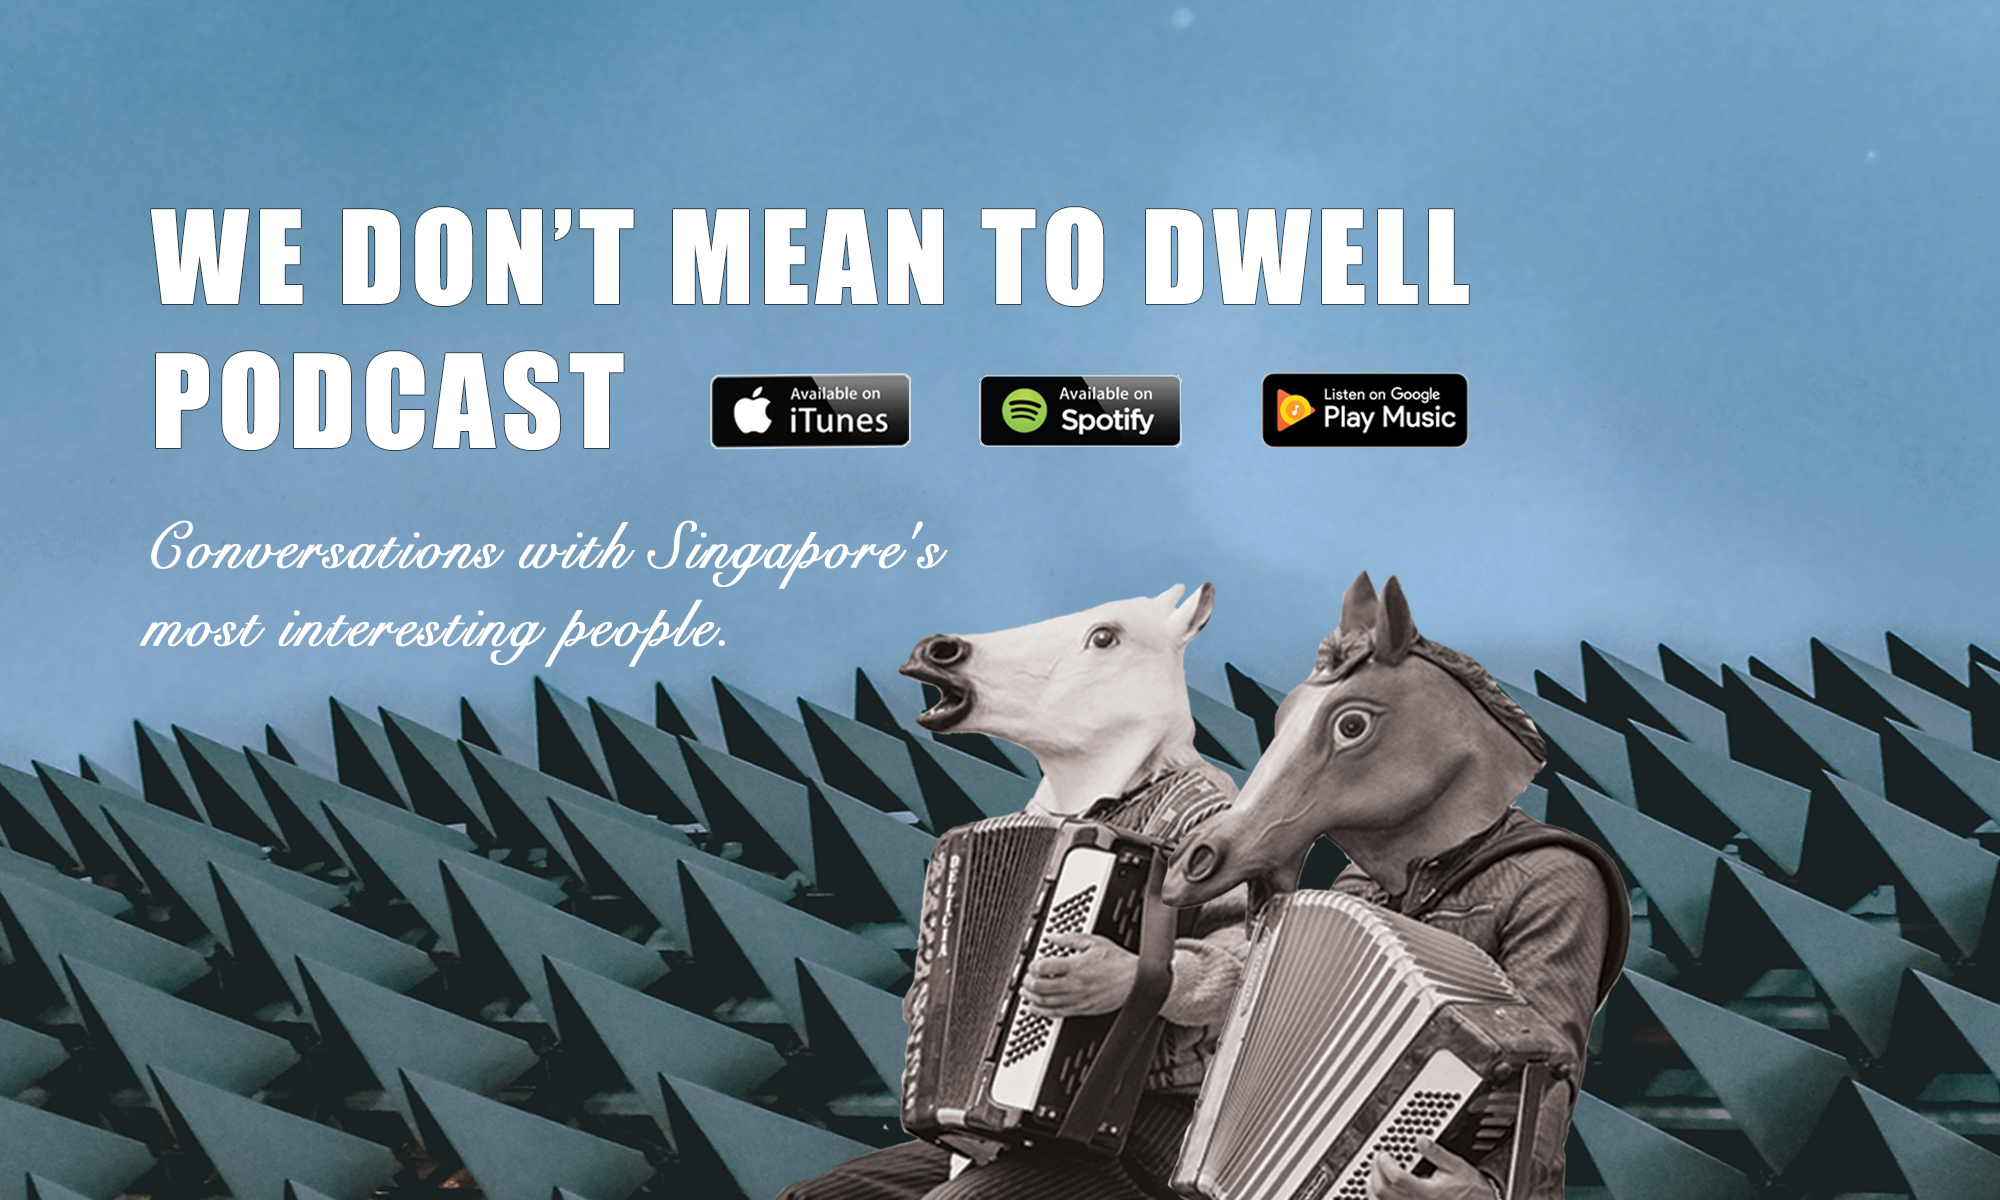 We Don't Mean To Dwell Podcast